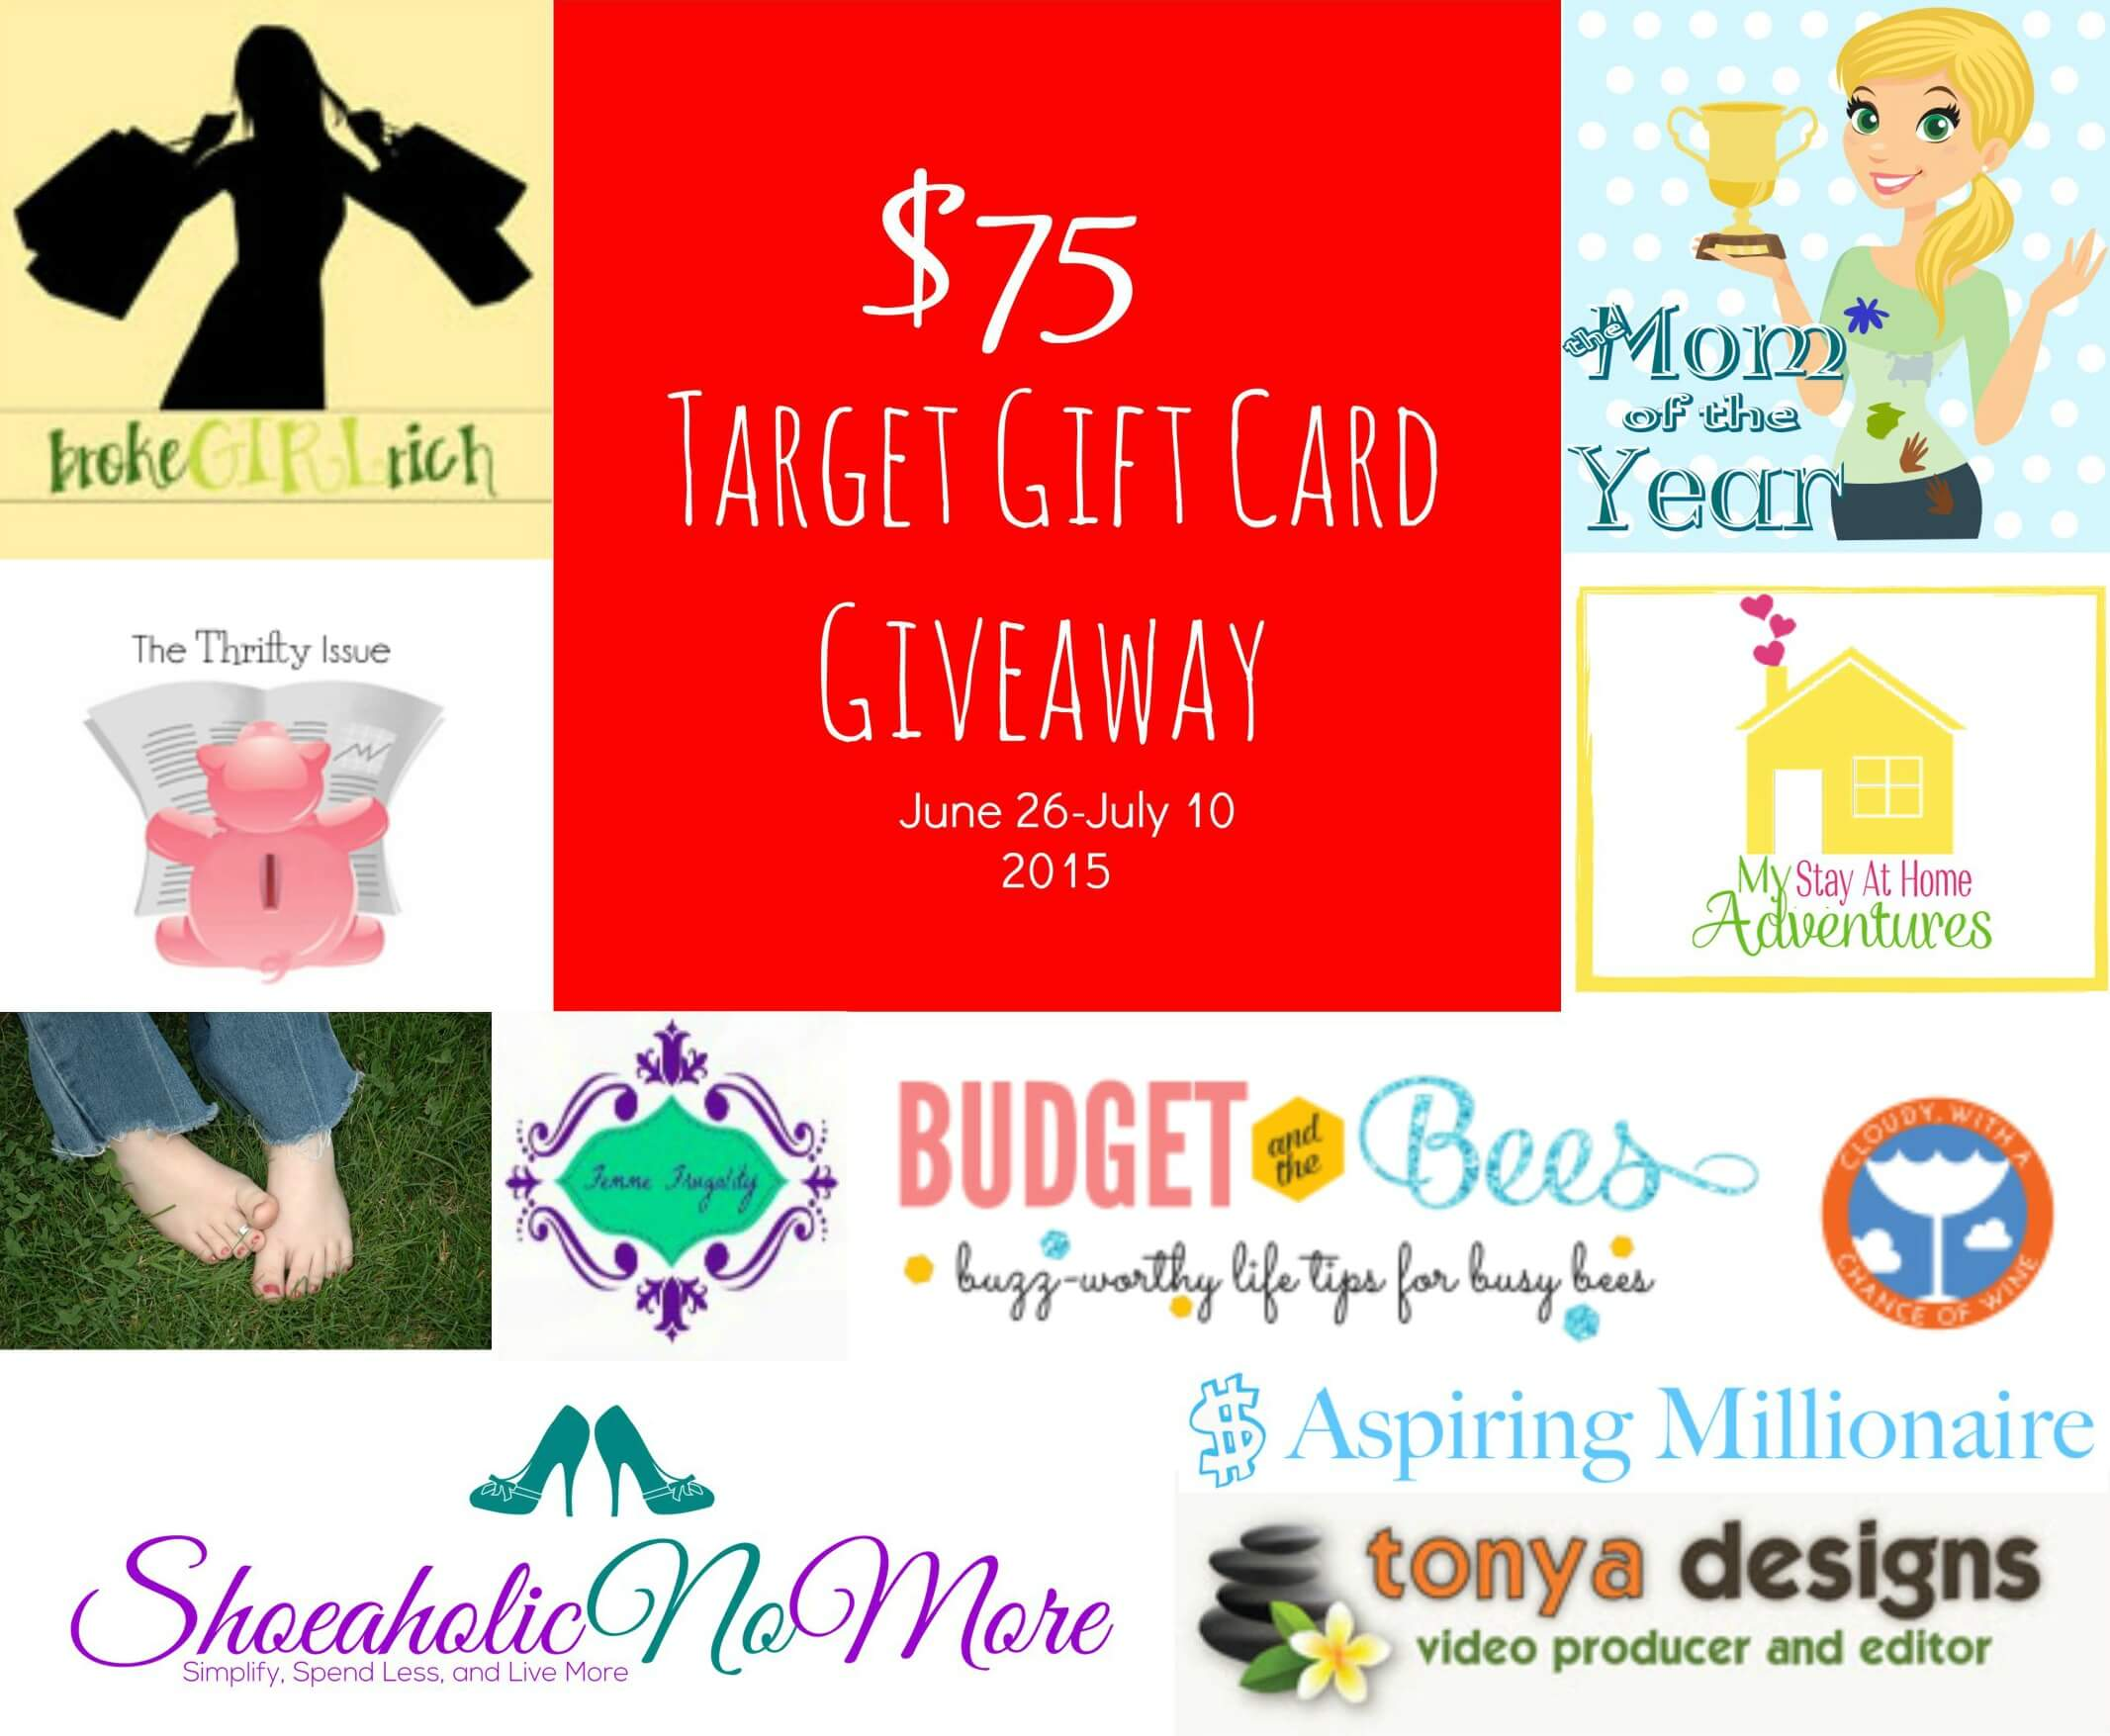 Win a $75 Target Gift Card to celebrate 4 Years of Blogging on Femme Frugality! #giveaway